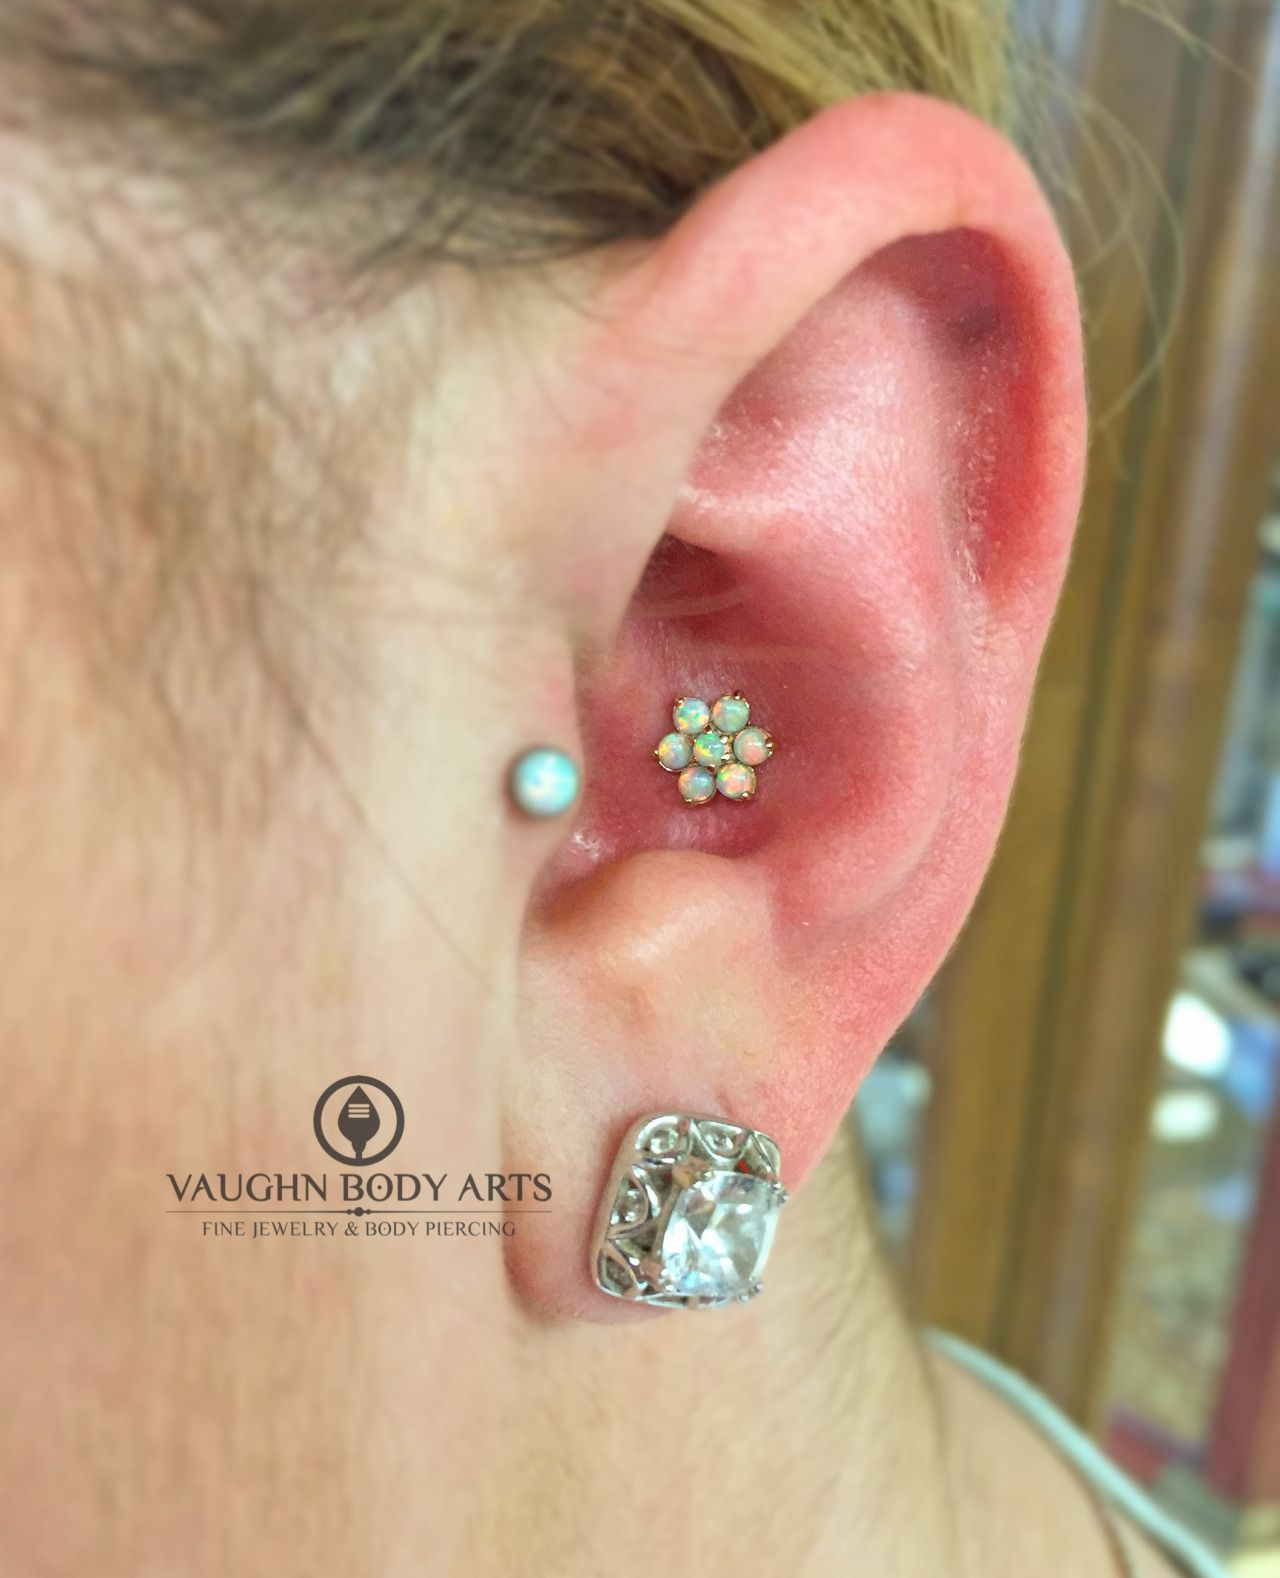 Ashley and Rainee stopped by for conch piercings the other night. Here is Ashley's ear rocking this beautiful 18k yellow gold flower with white opals, from the fine folks of anatometal.These threaded flowers are simply stunning and work so well in so many piercings. You can't go wrong with opals and gold.Thank you so much, Ashley!vaughnbodyartsMonterey, CA